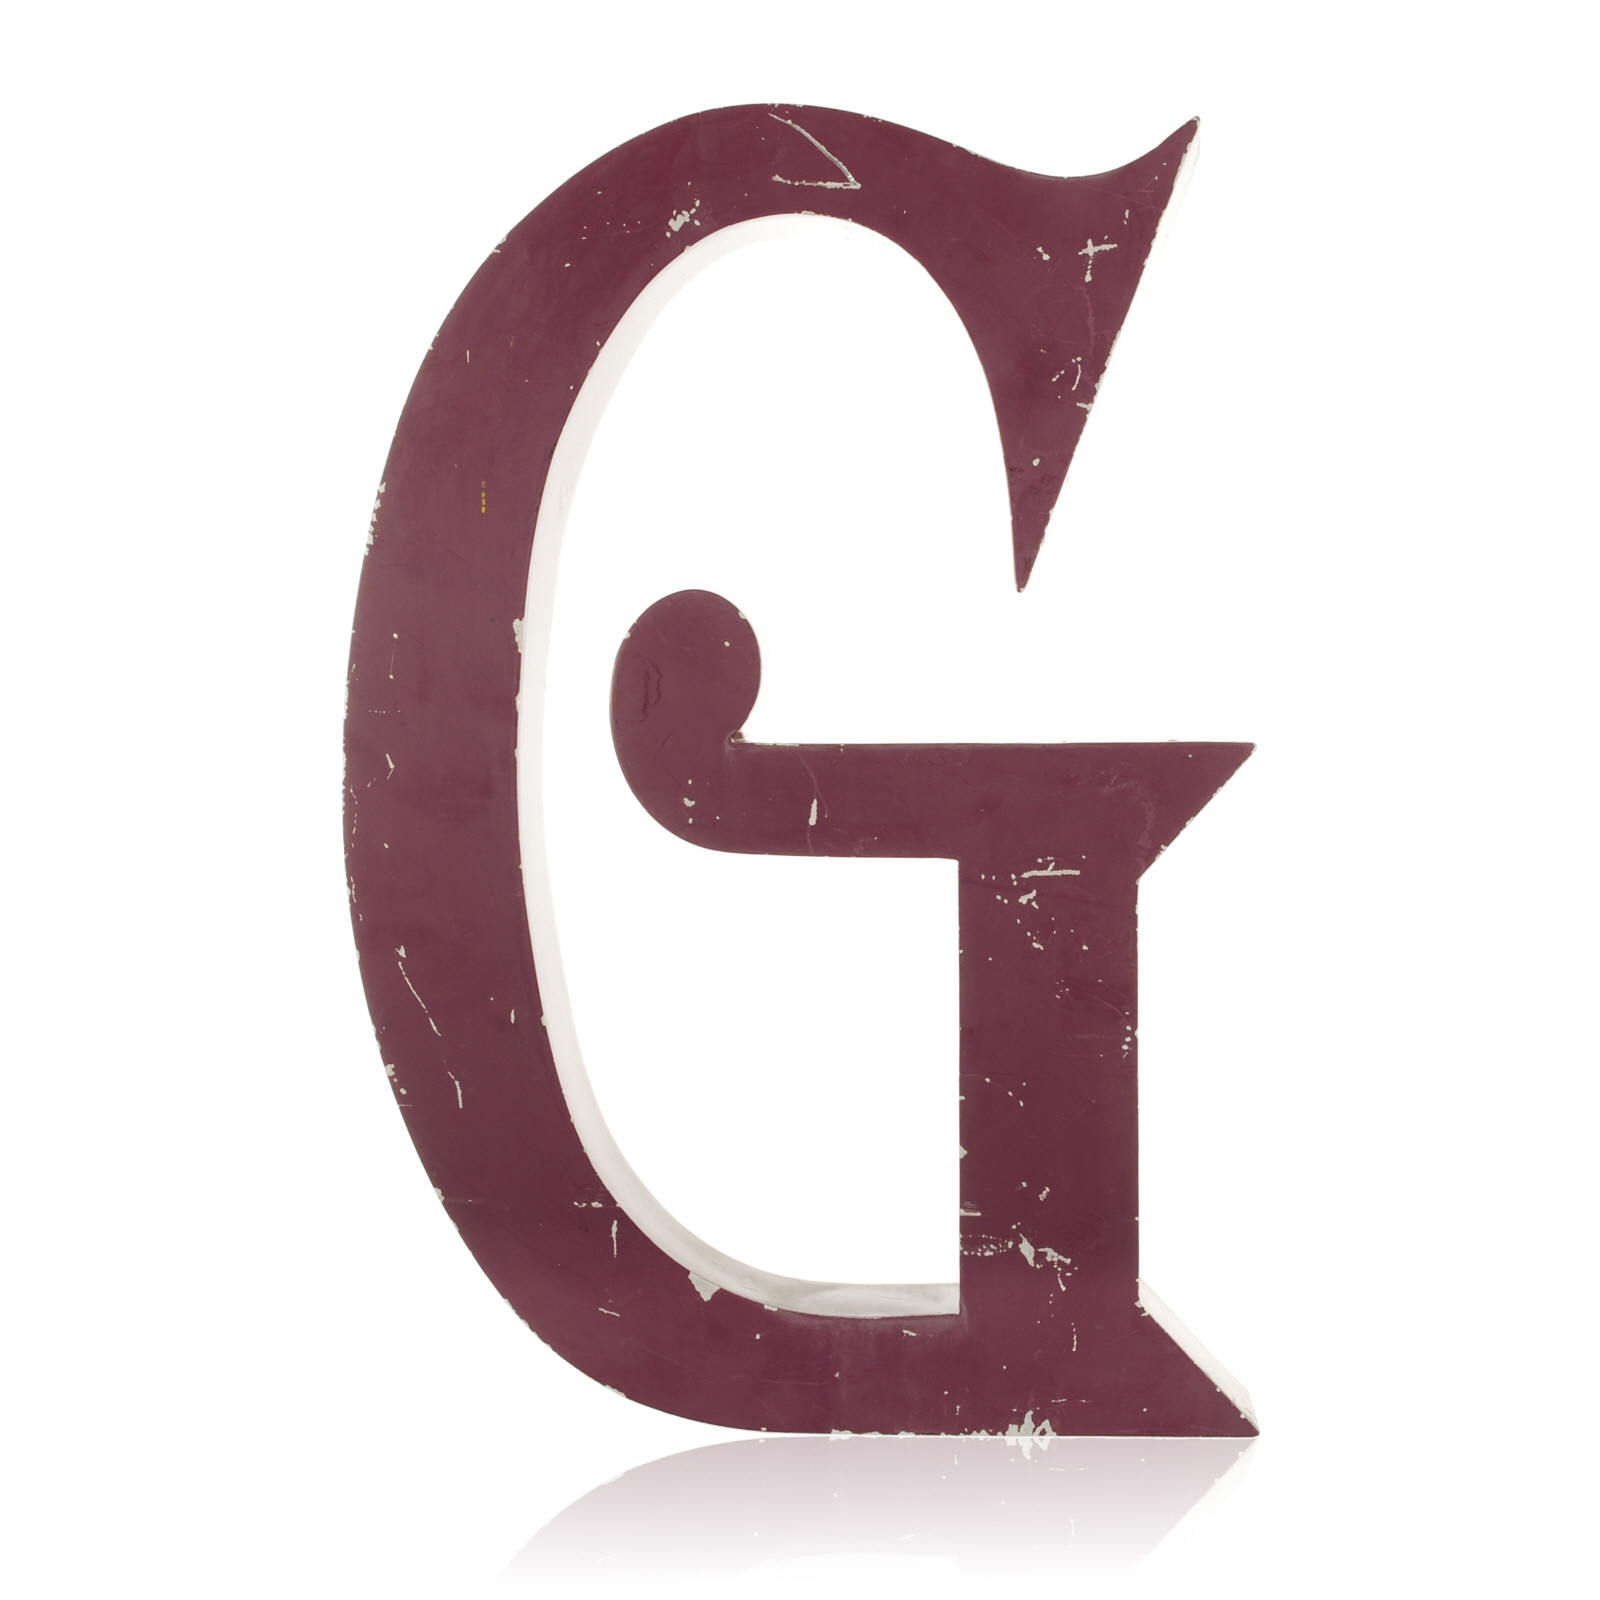 Cool Letter G Designs